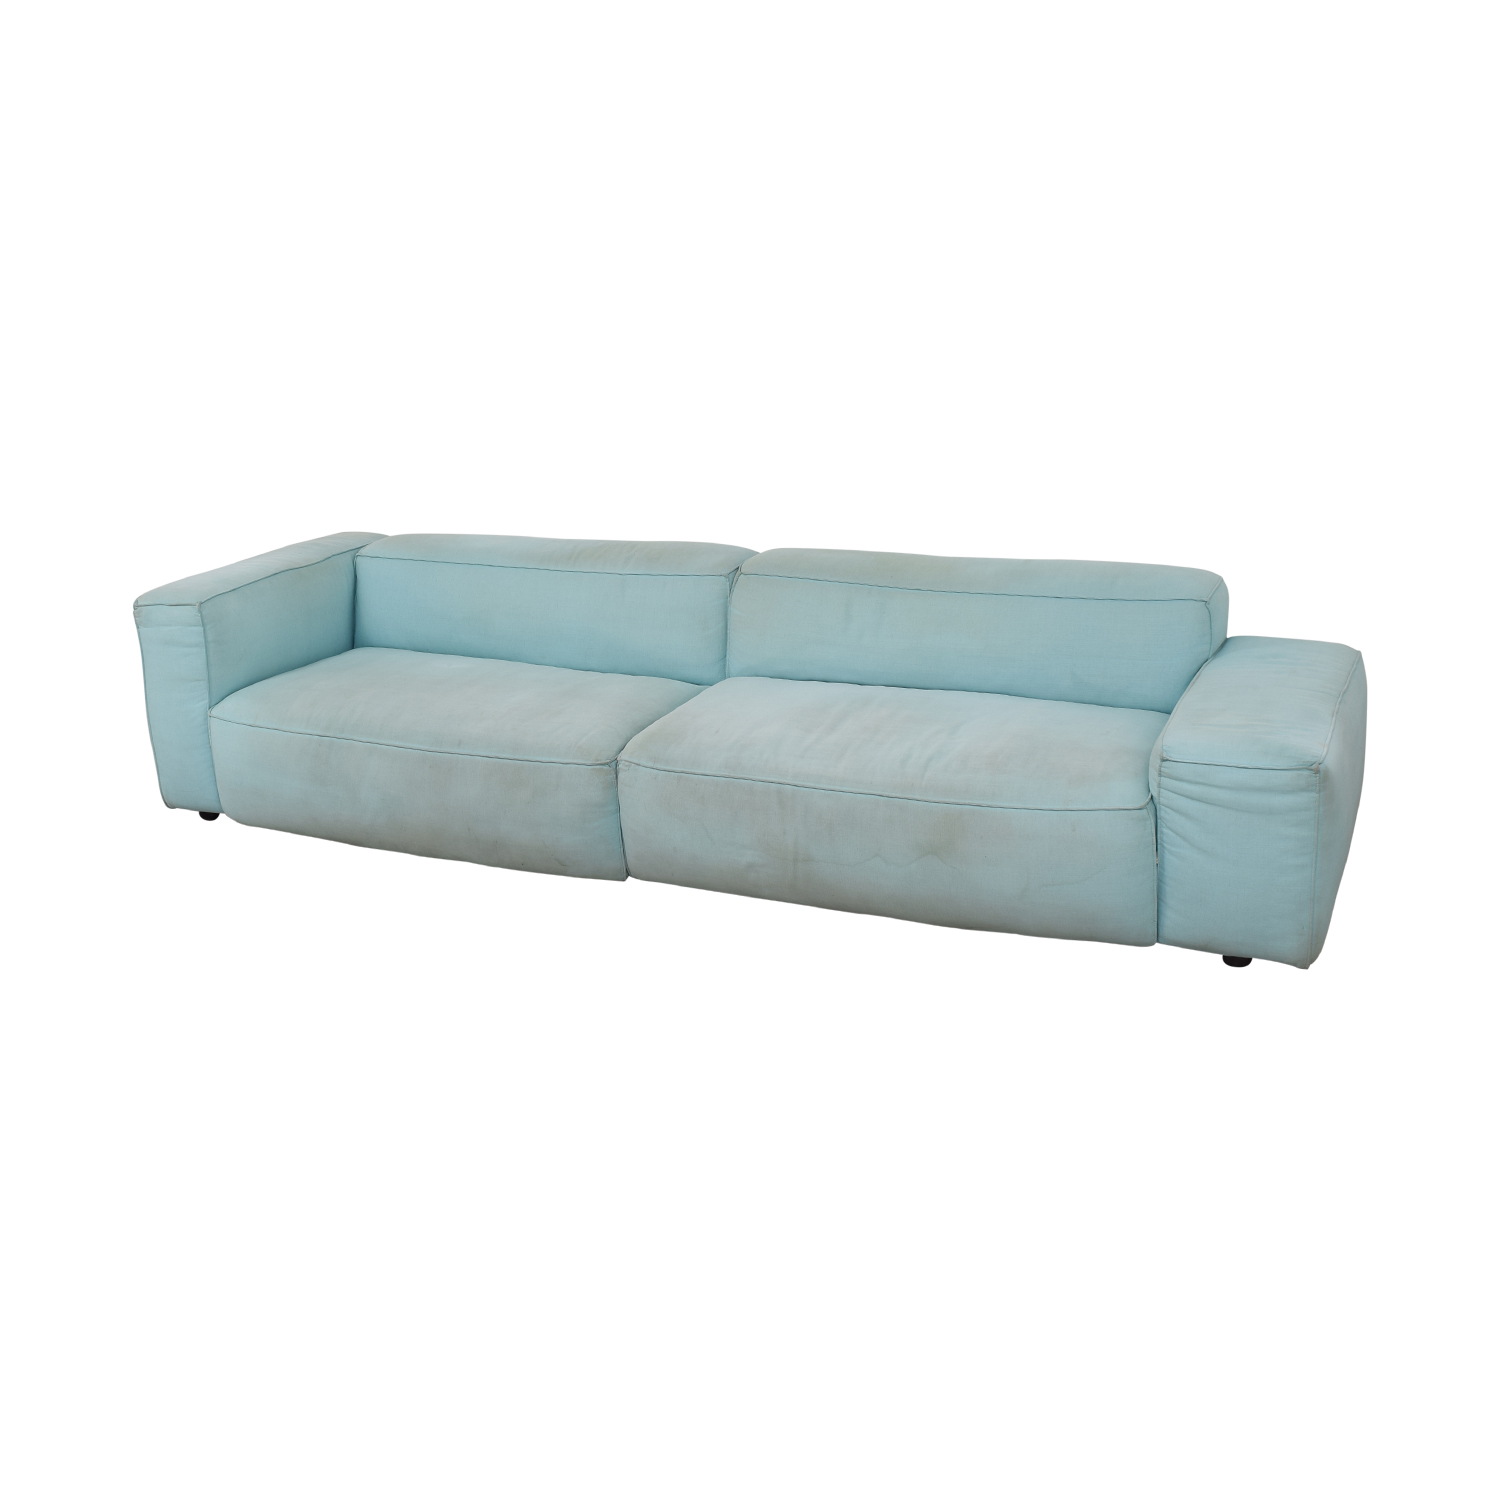 Interior Define Interior Define Two-Piece Sectional Sofa pa